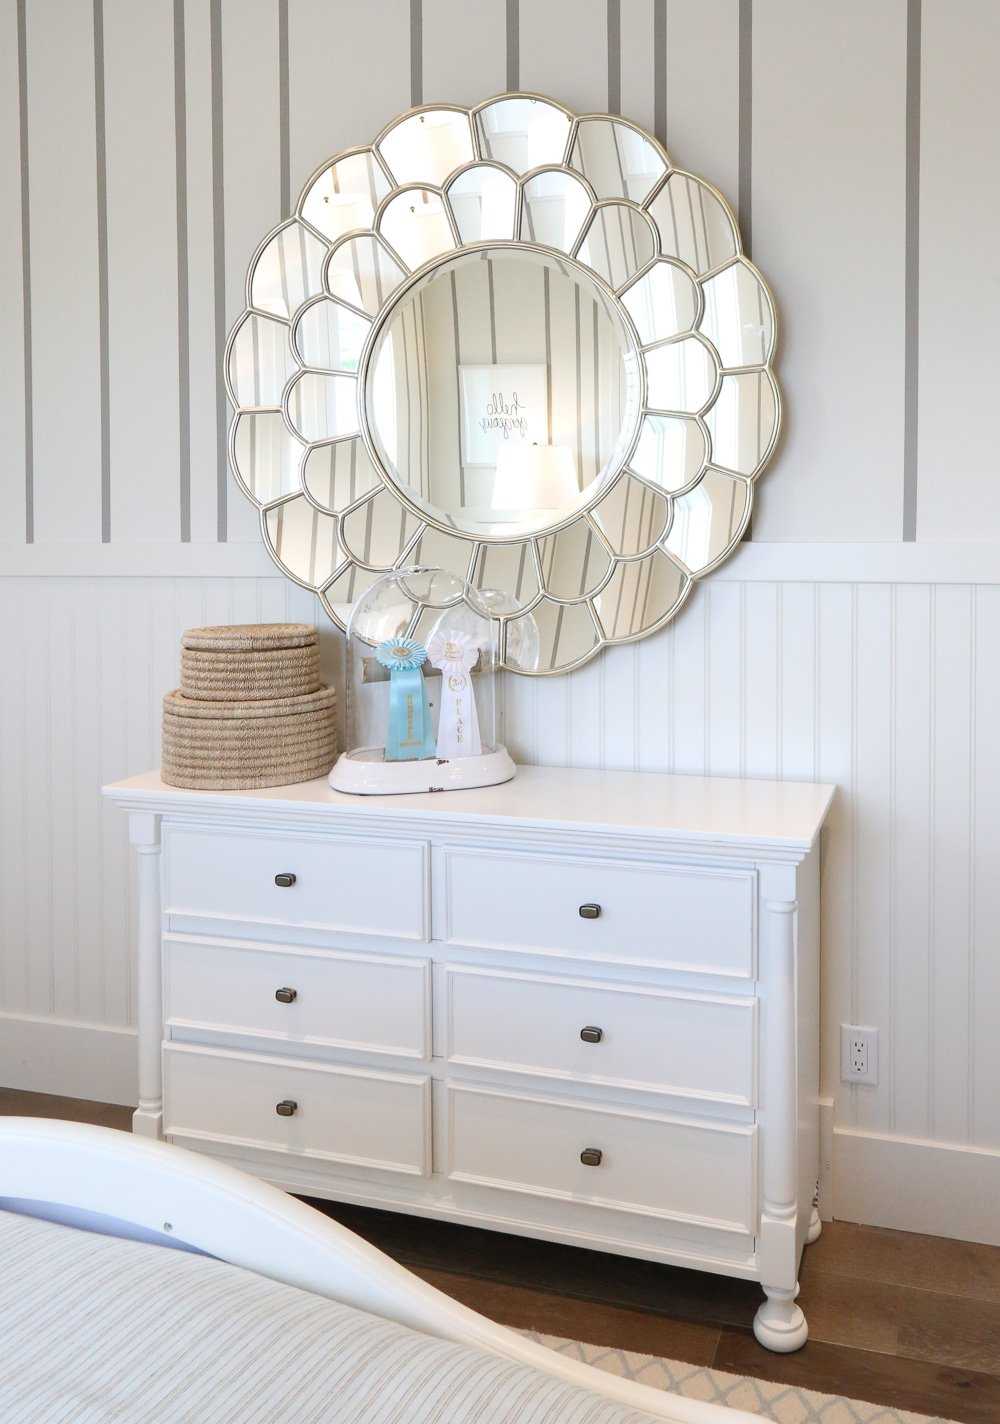 Large floral mirror